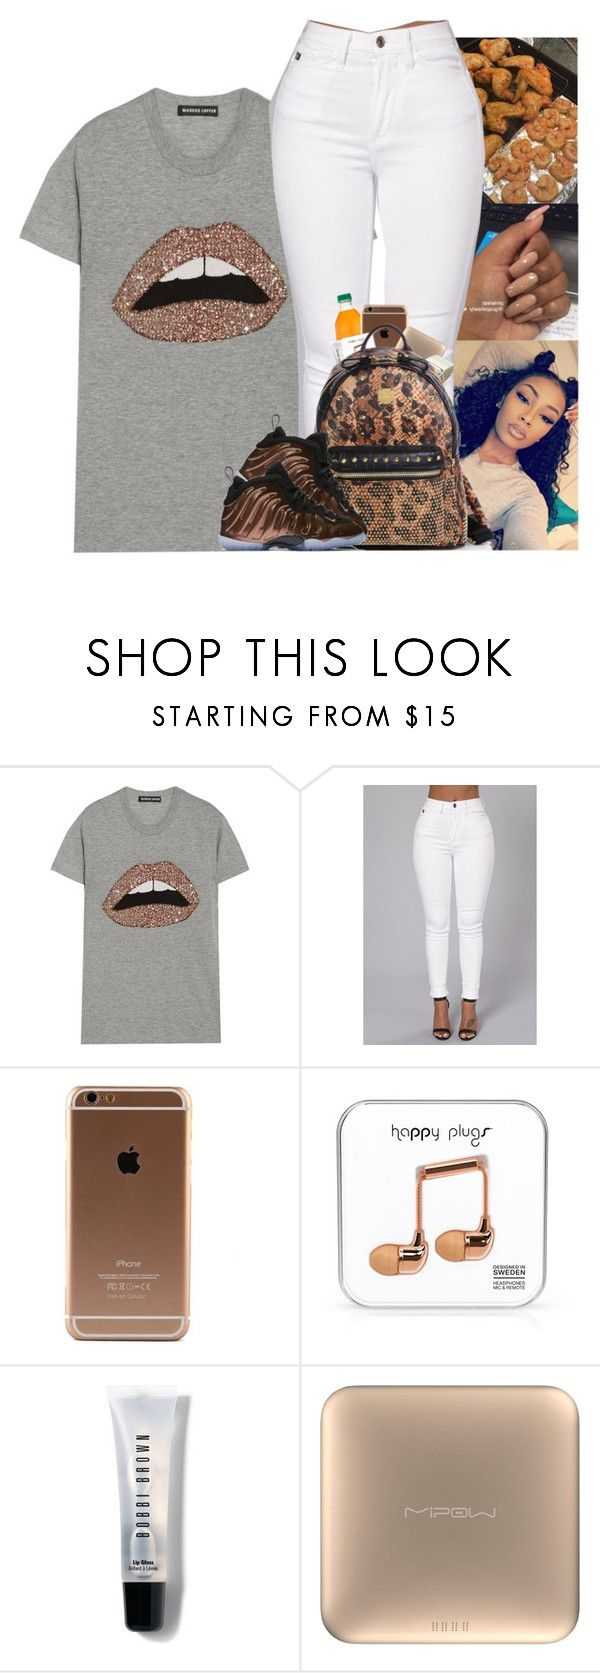 """"" by kennisha84 ❤ liked on Polyvore featuring Markus Lupfer, Happy Plugs, Bobbi Brown Cosmetics, MiPow, MCM and NIKE"